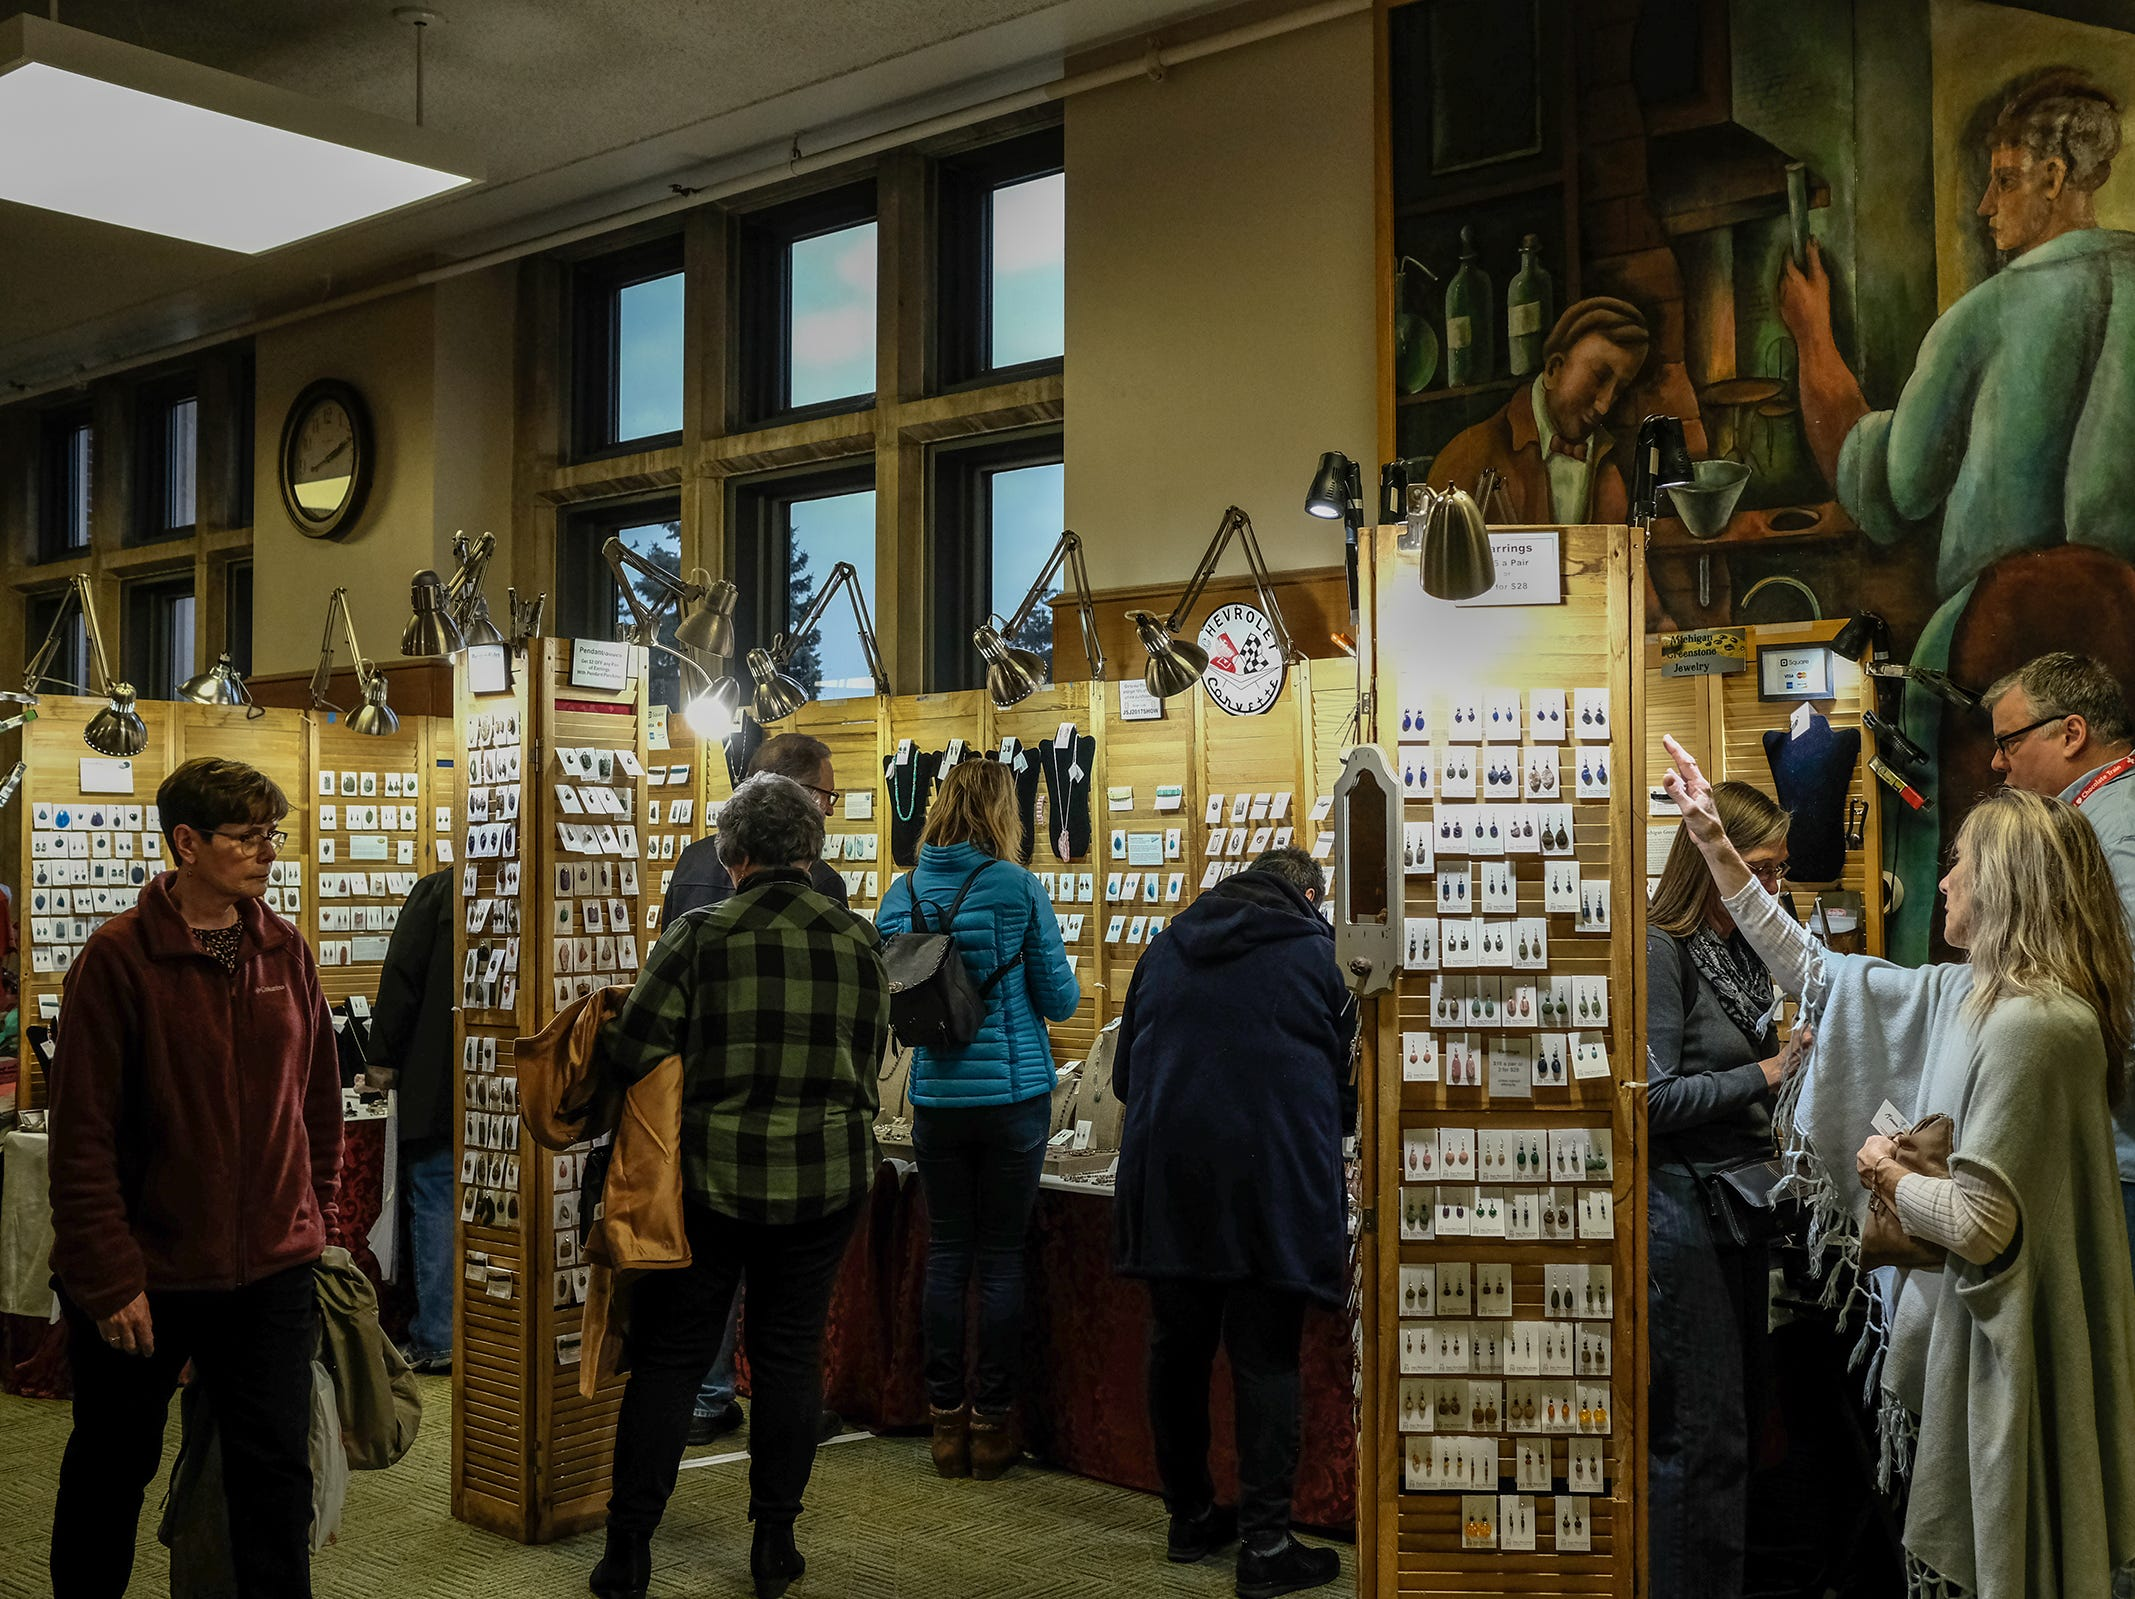 The annual Michigan State University Arts & Crafts Show wrapped up Sunday, Dec. 2, 2018. Three floors of the MSU Union housed 175 vendors displaying their wares for the 55th year.